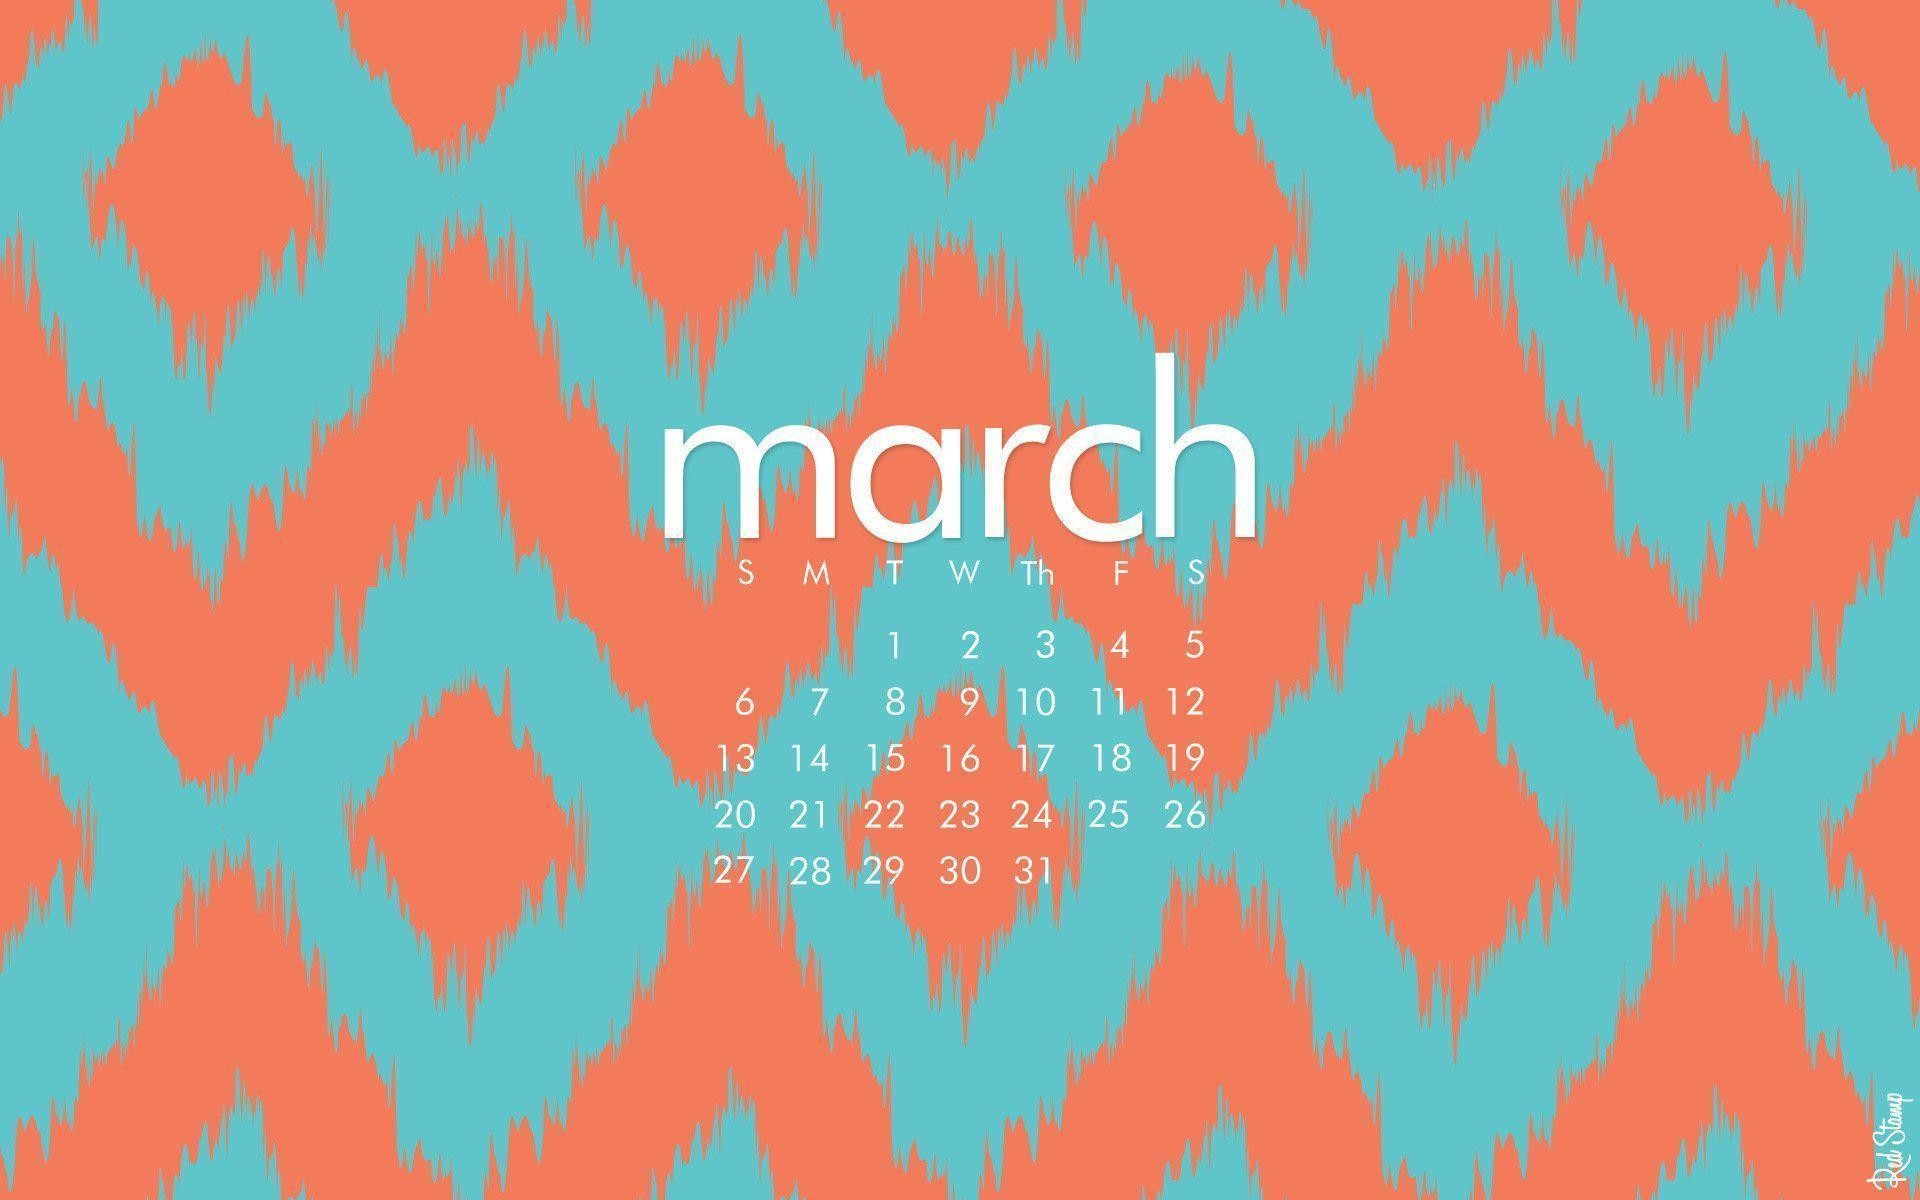 1920x1200 March Desktop Calendar wallpaper - 359709